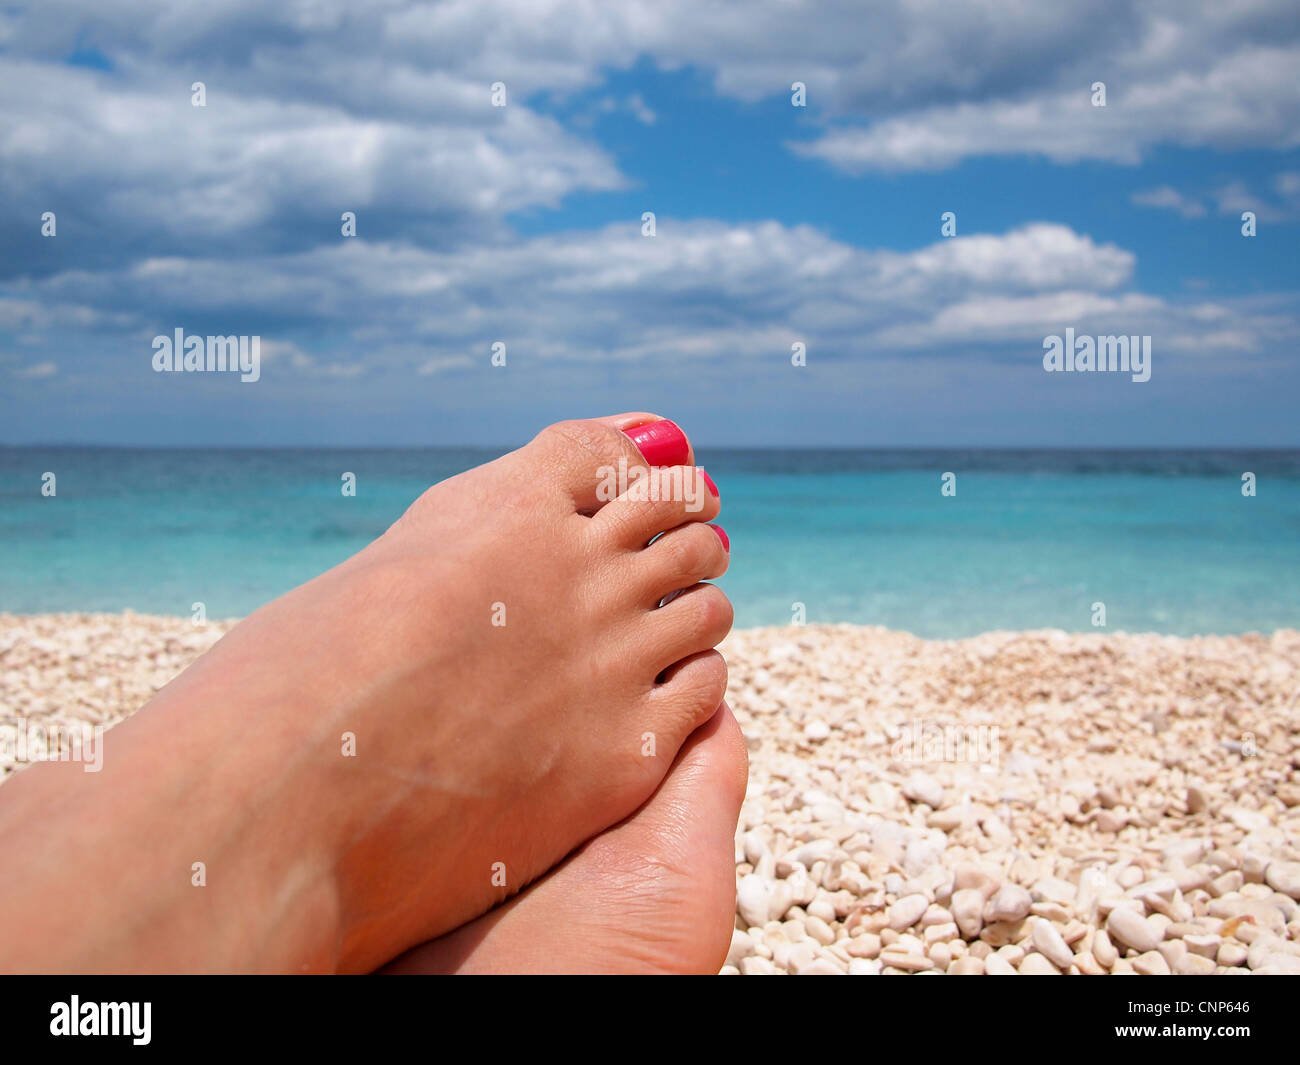 Female feet with red polished nails relaxing lazy on the beach. - Stock Image